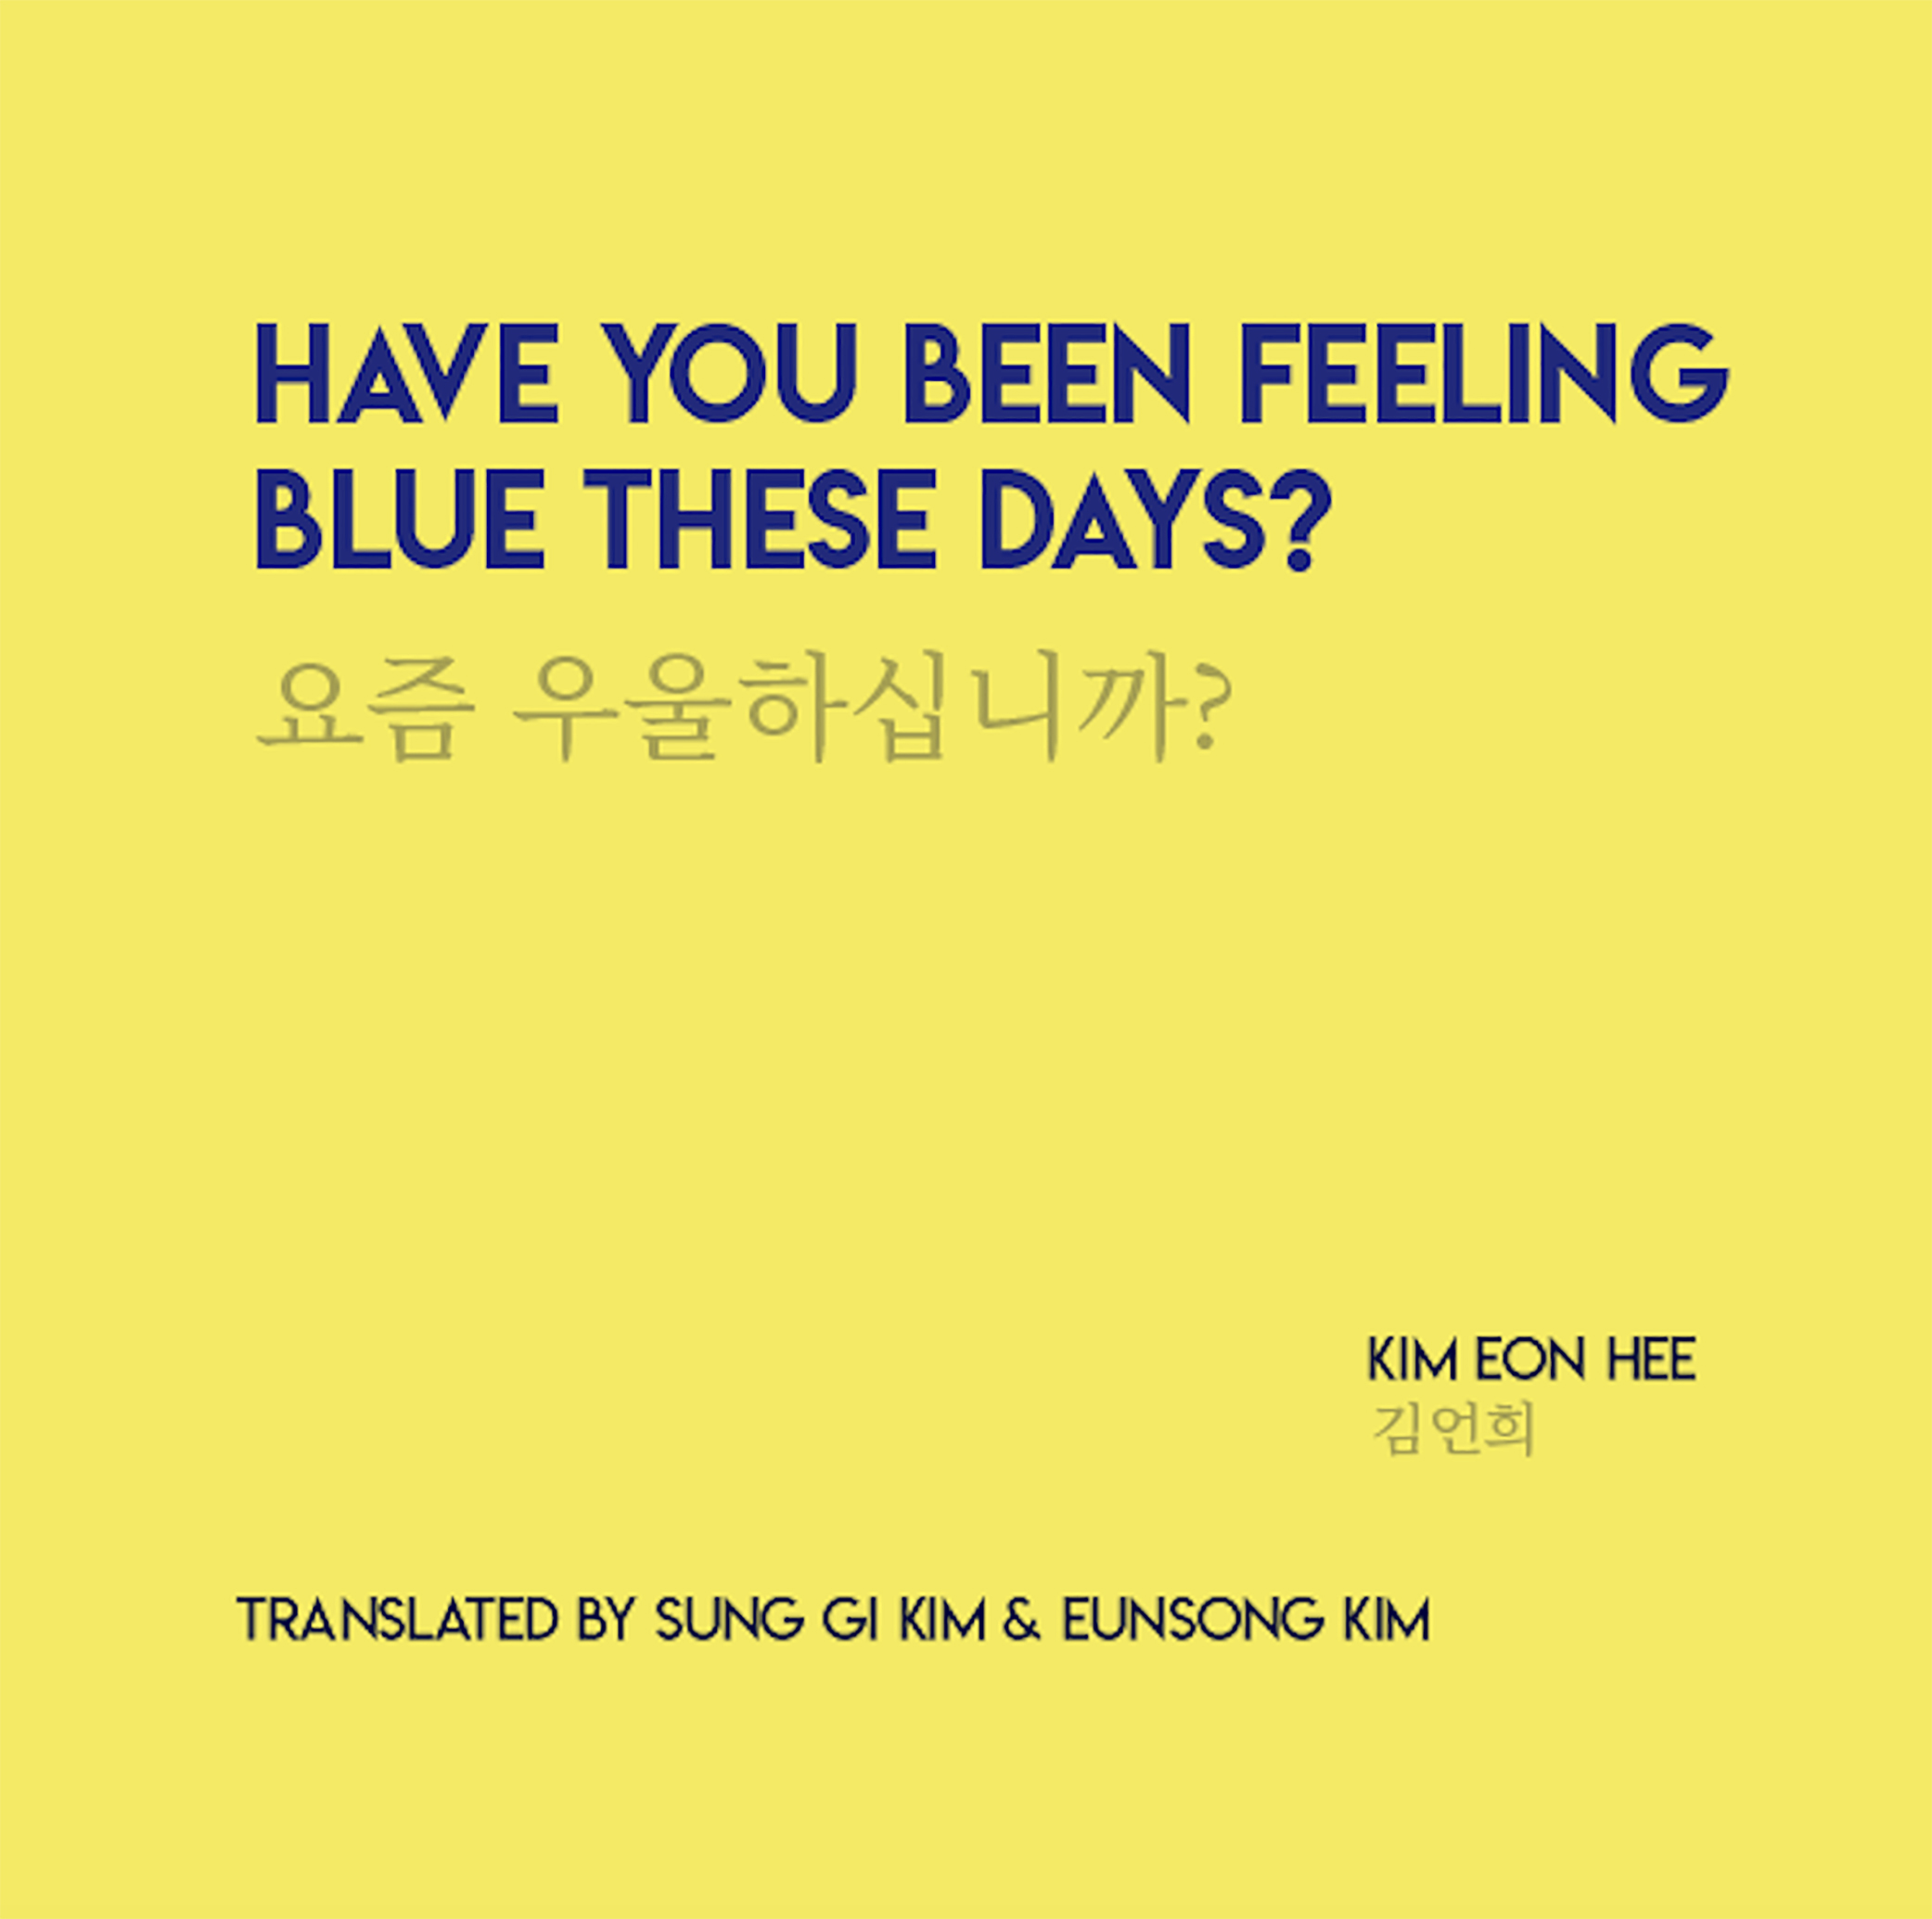 Have You Been Feeling Blue These Days?